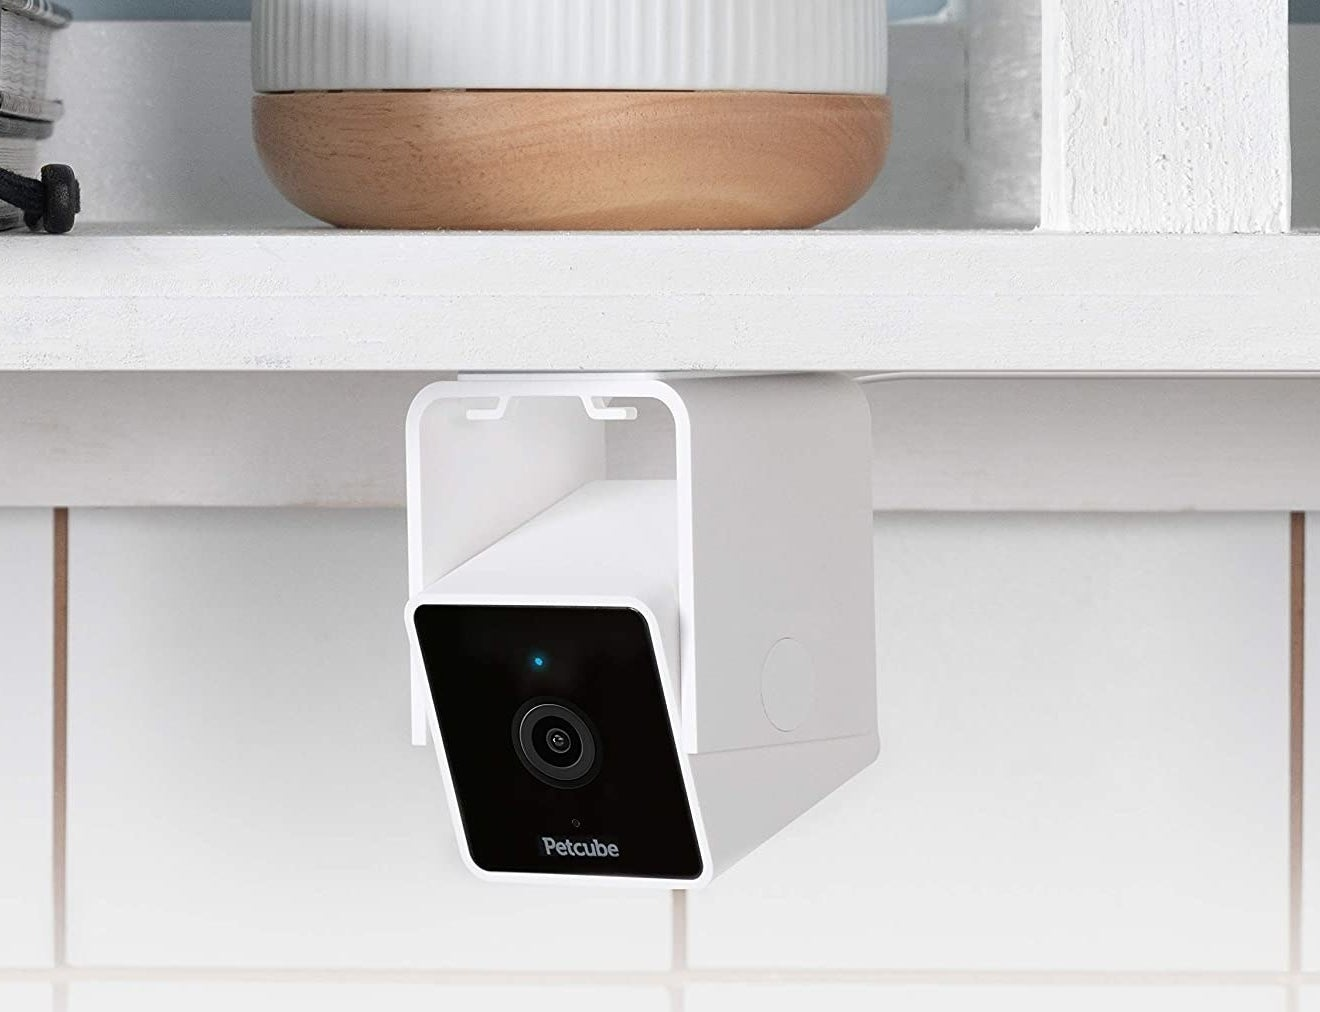 A small camera mounted to the bottom of a kitchen shelf